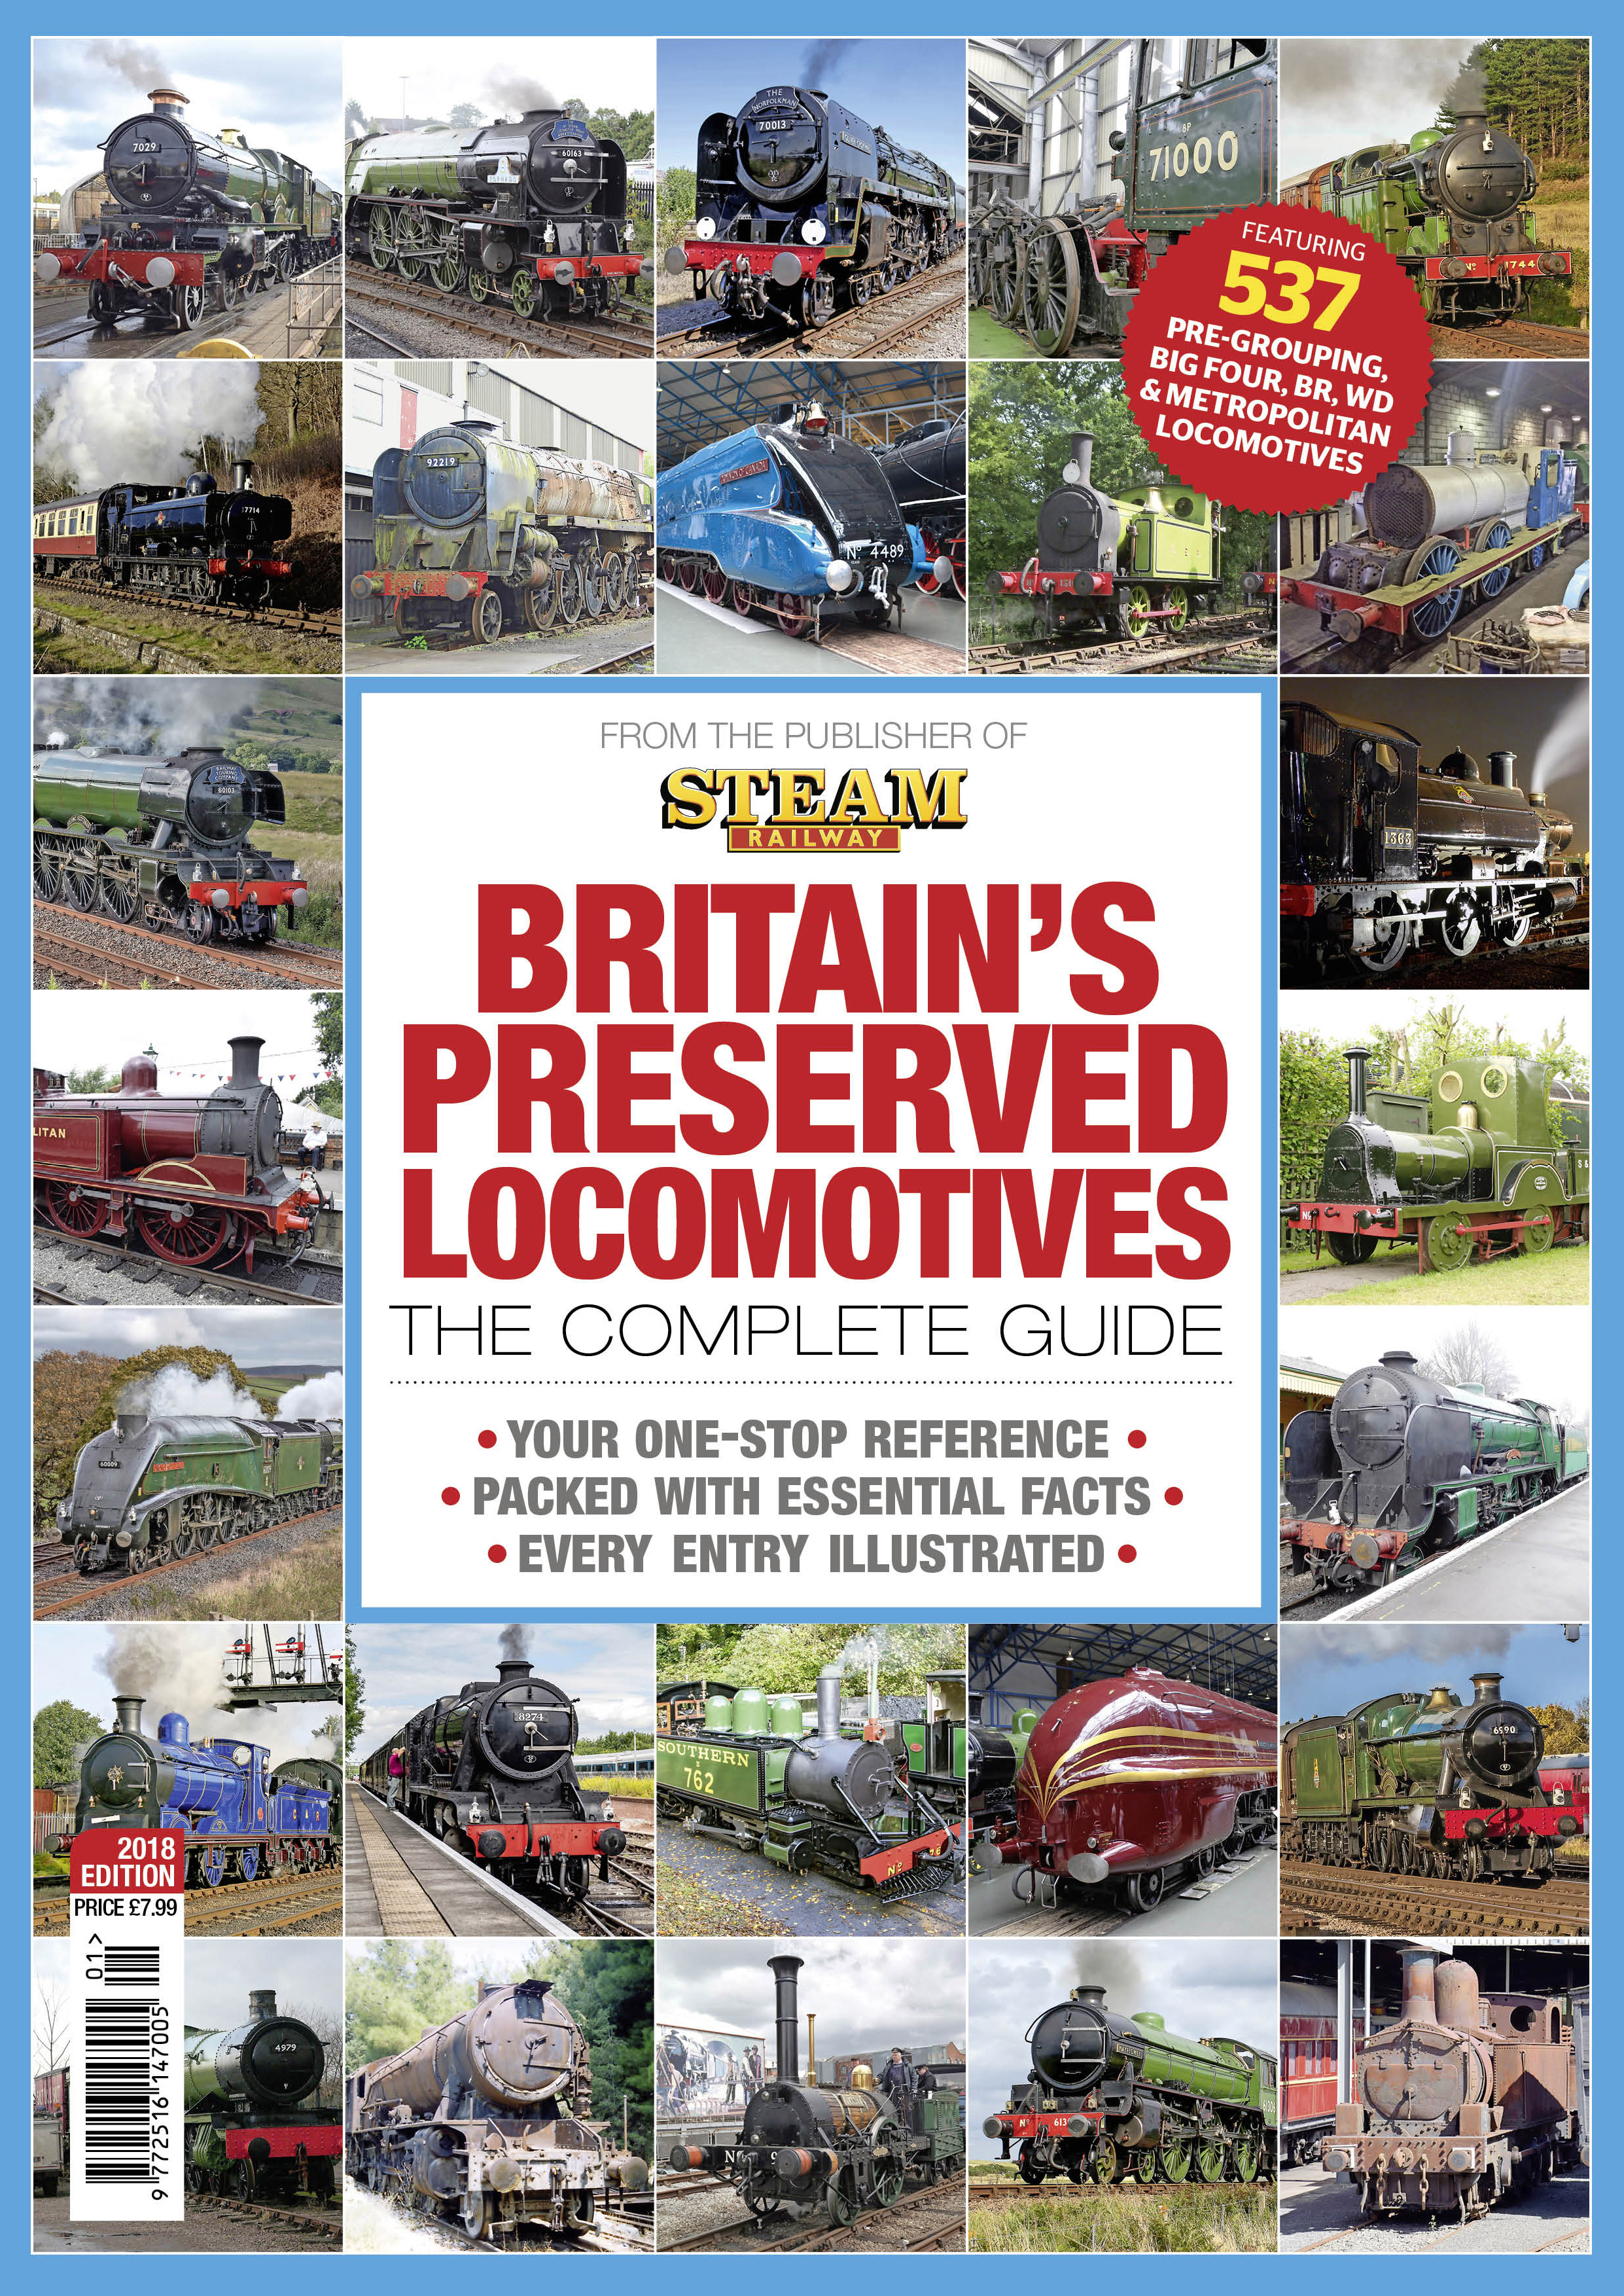 BRITAINS PRESERVED LOCOS COVER.jpg